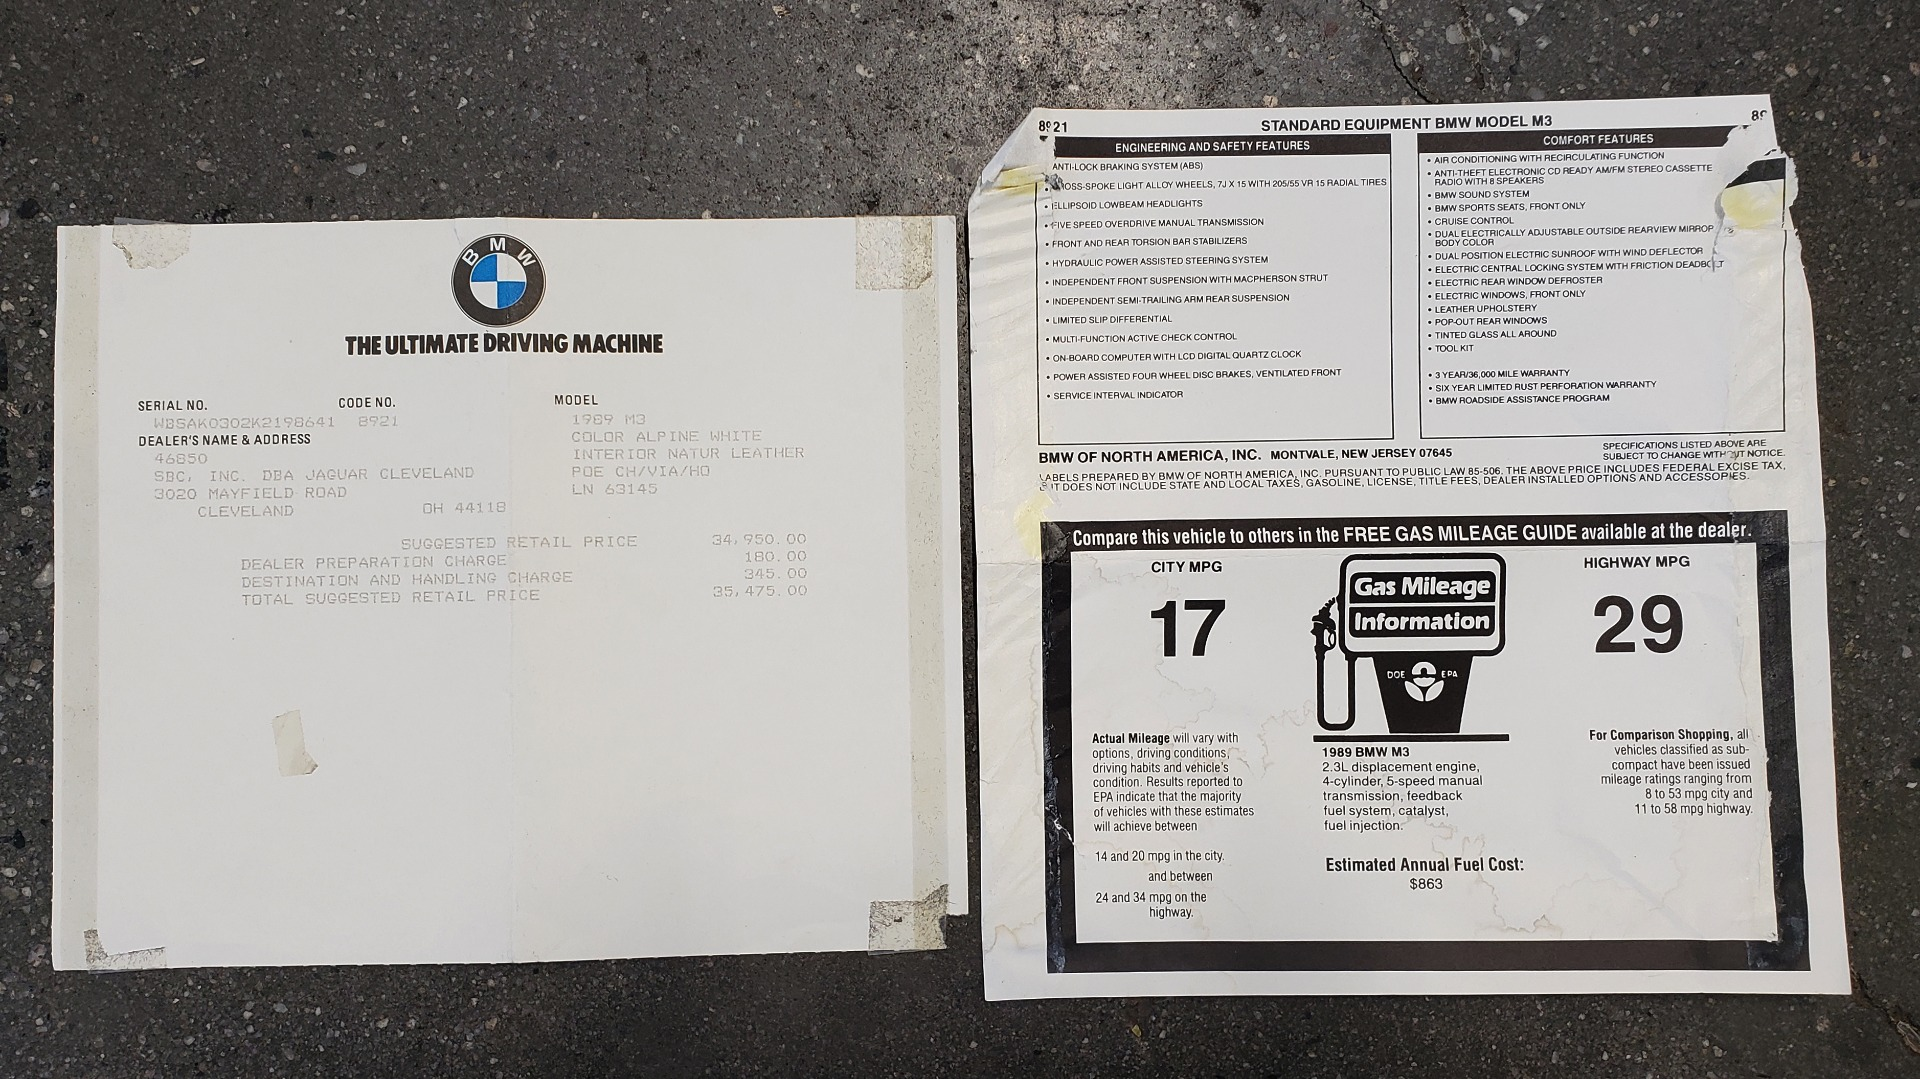 Used 1989 BMW M3 COUPE 2DR / 5-SPEED MAN / LOW MILES / SUPER CLEAN for sale Sold at Formula Imports in Charlotte NC 28227 96